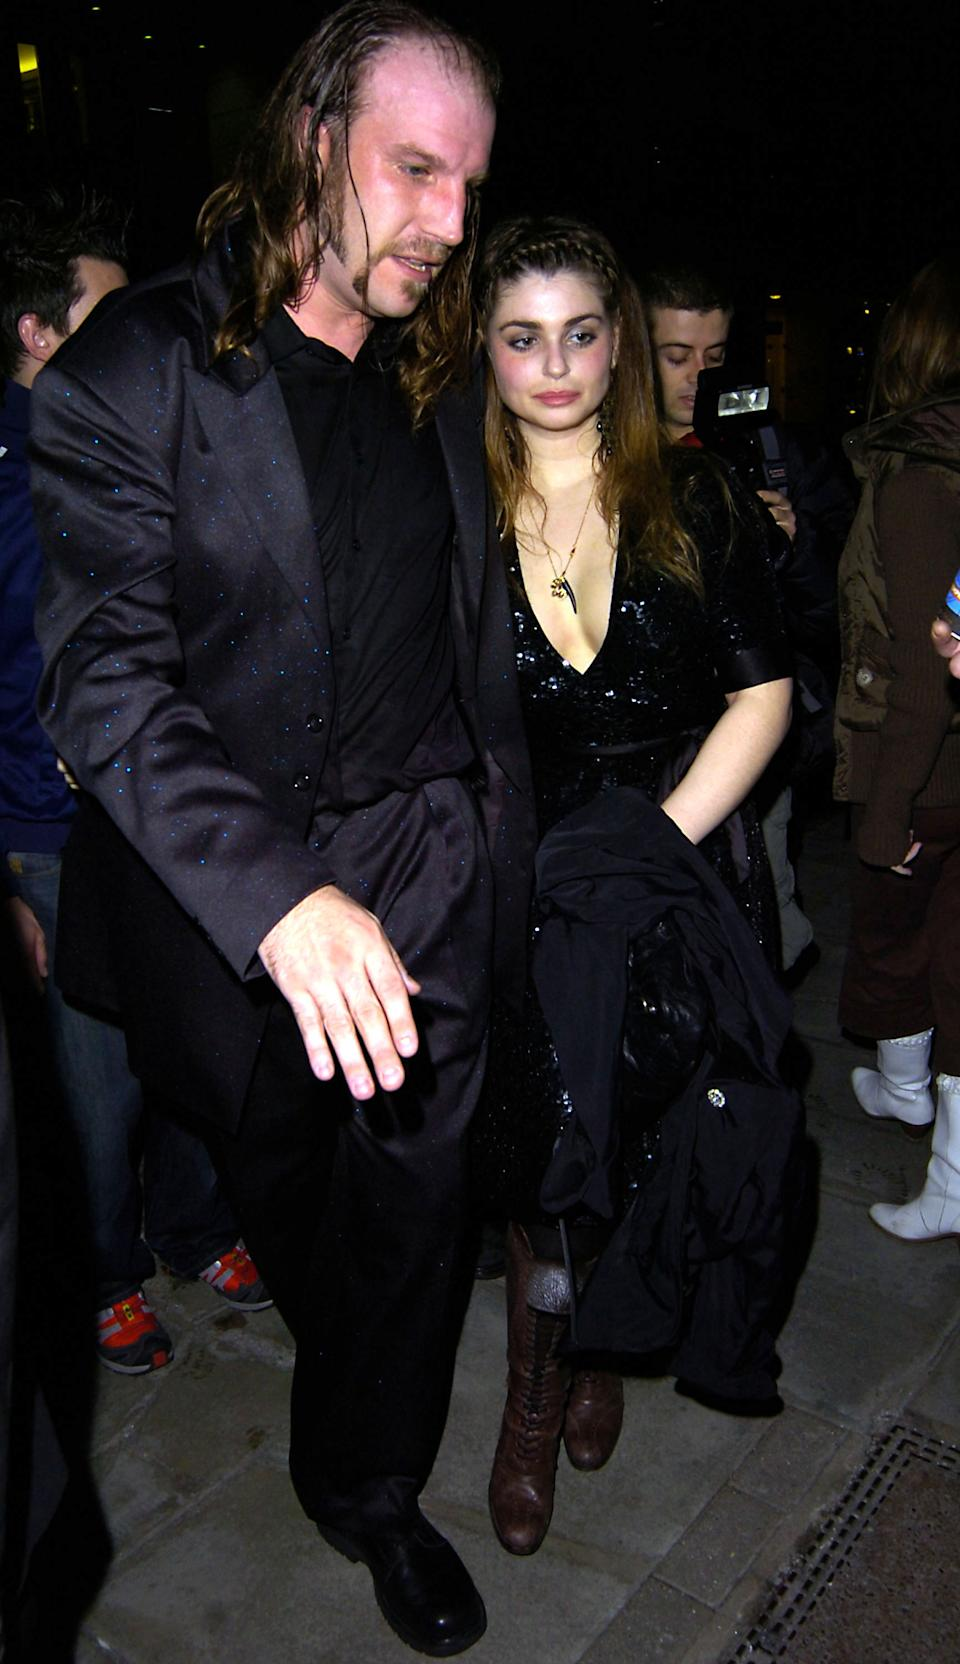 Aimee Osbourne during Celebrity Sightings Outside Kelly Osbourne's Birthday Party at the Sketch Club in London - October 27, 2005 at Sketch Club in London, Great Britain. (Photo by Mu Kei/FilmMagic)